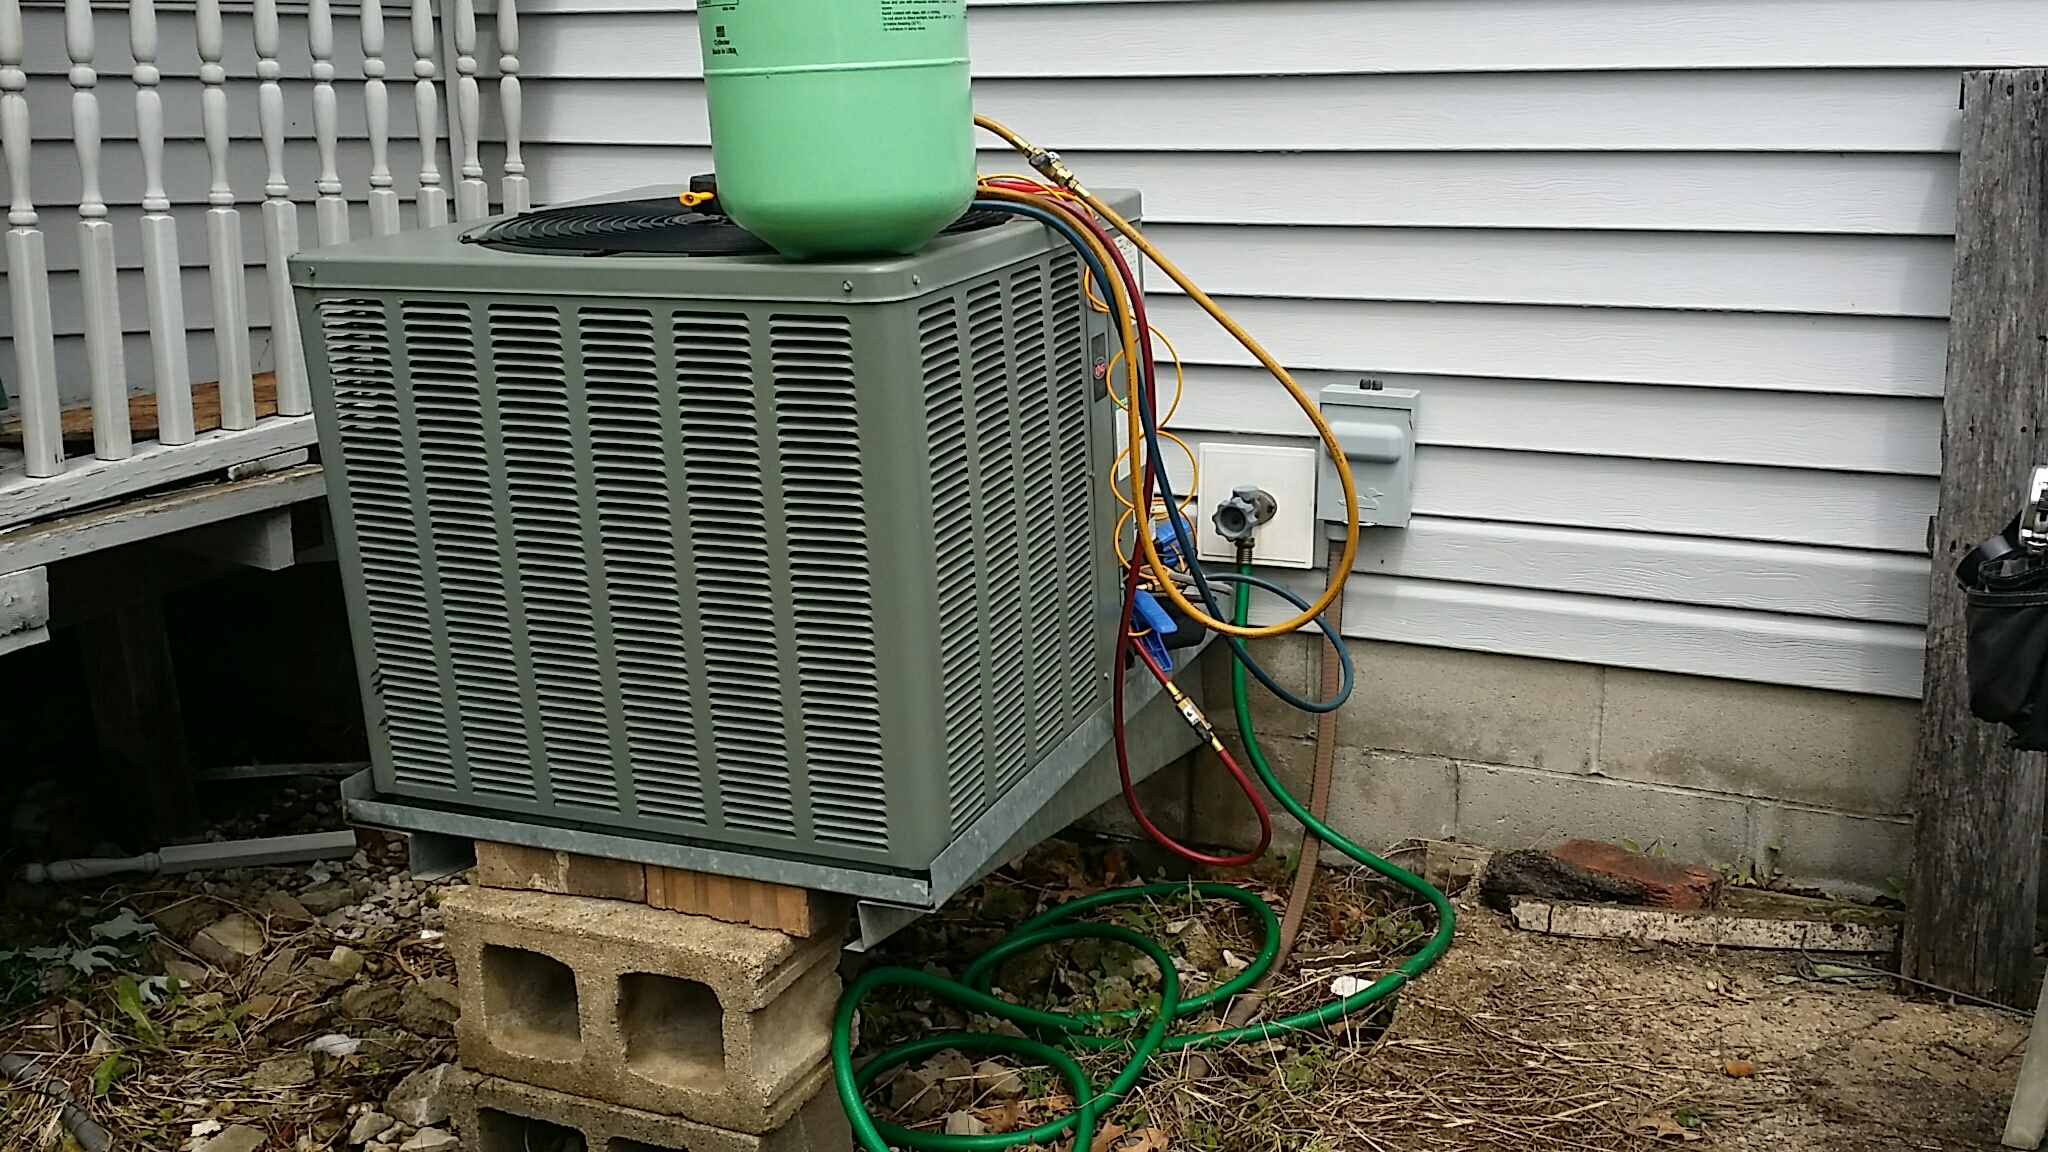 Grove City, OH - Weather King, product of Rheem Ruud  Maintenance Cleaning and R22 freon refrigerant recharge  Grove Oak Court  Grove City Ohio 43123